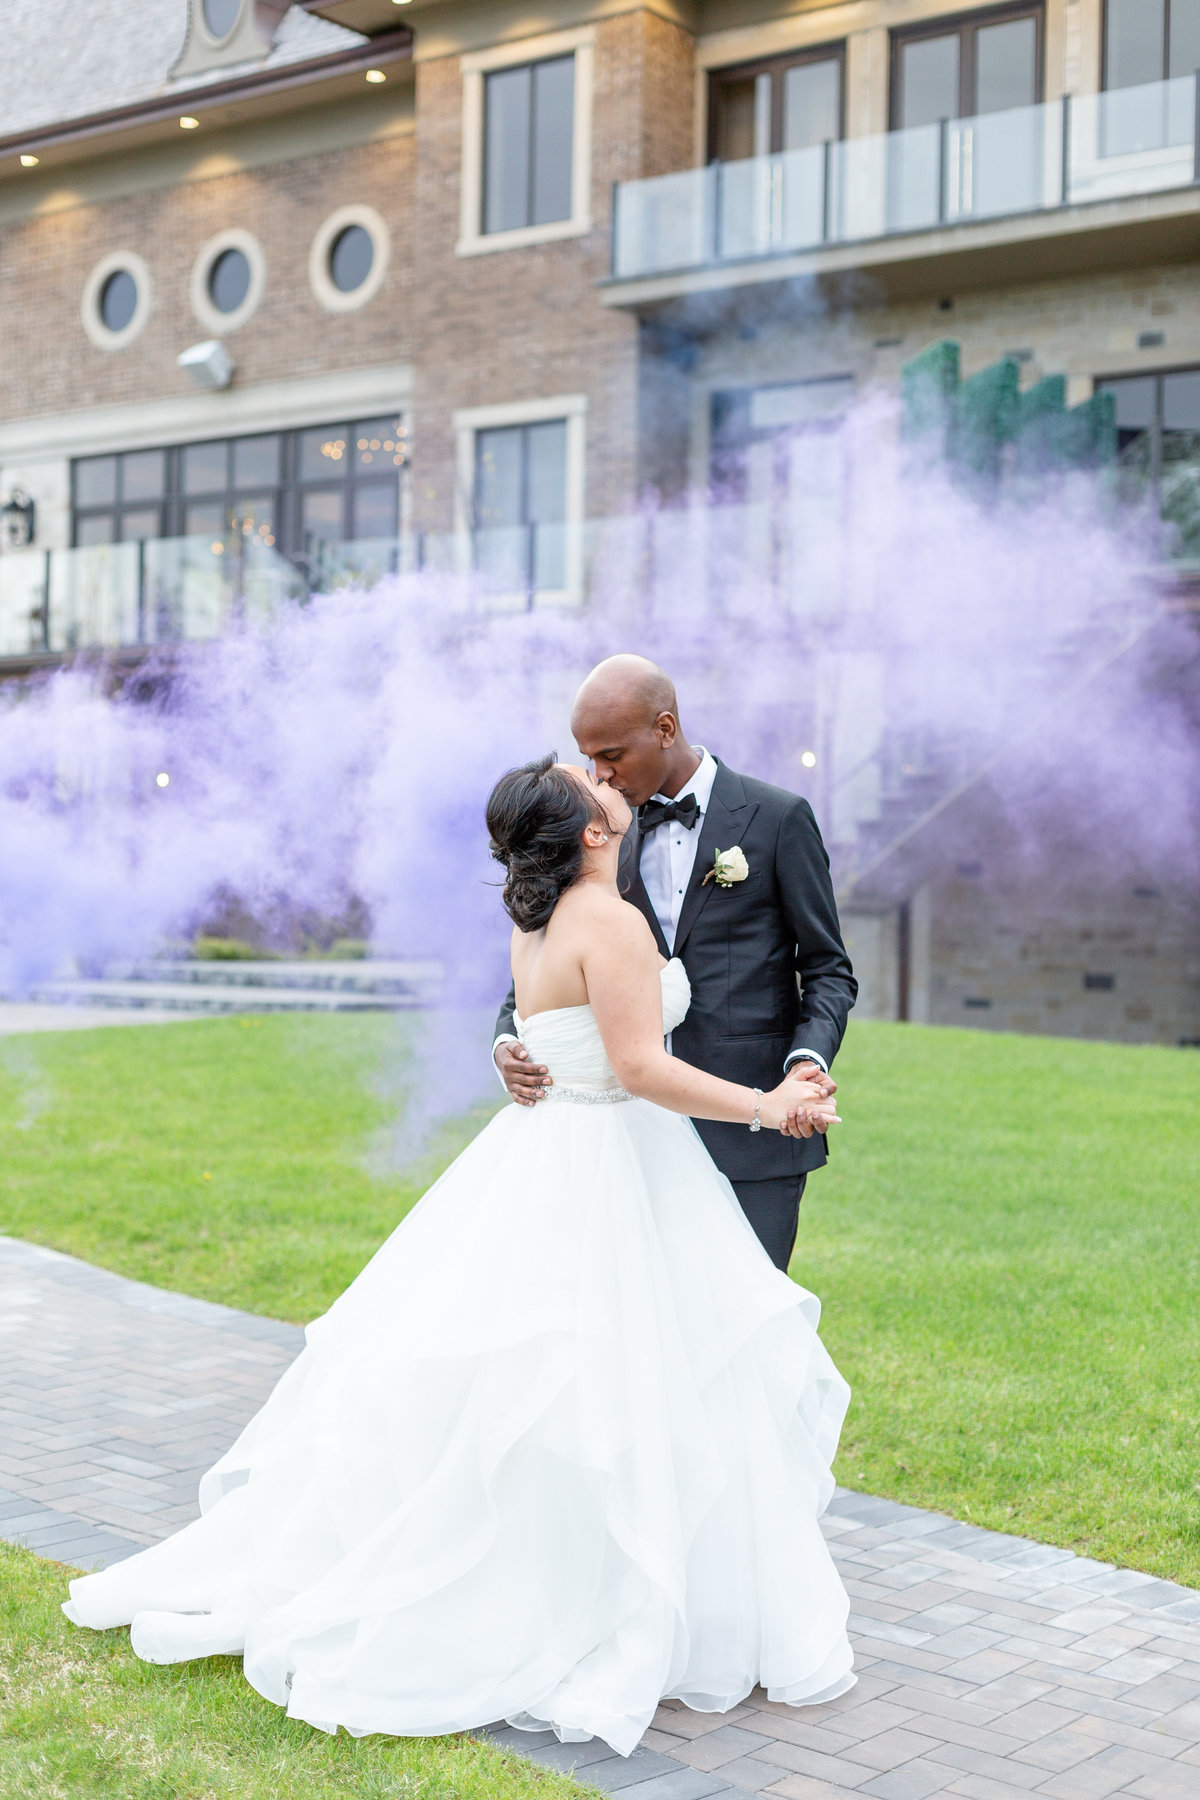 arlington-estae-Vicky-and-Emmanuel-Wedding-Bride-and-Groom-Chris-and-Micaela-Photography-184